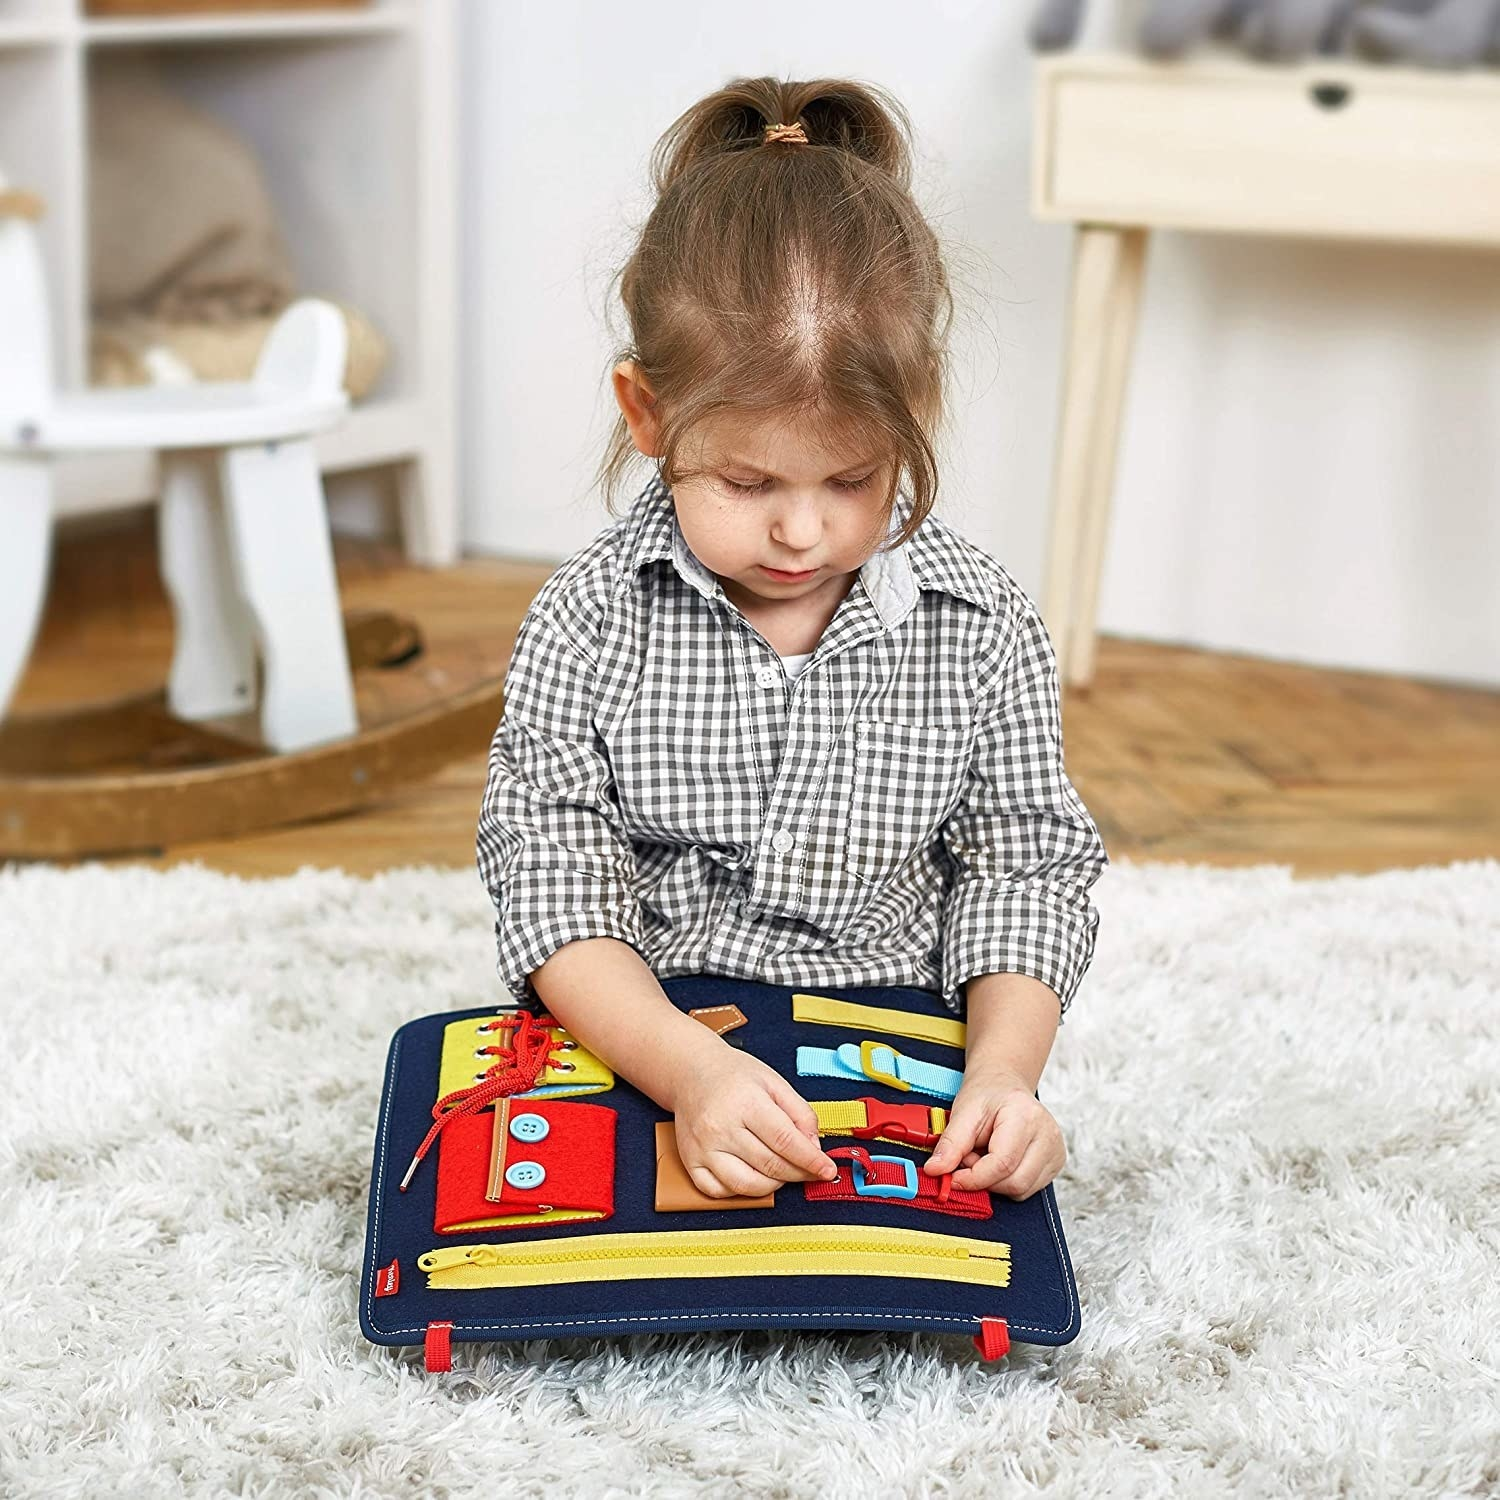 A child playing with the busy board